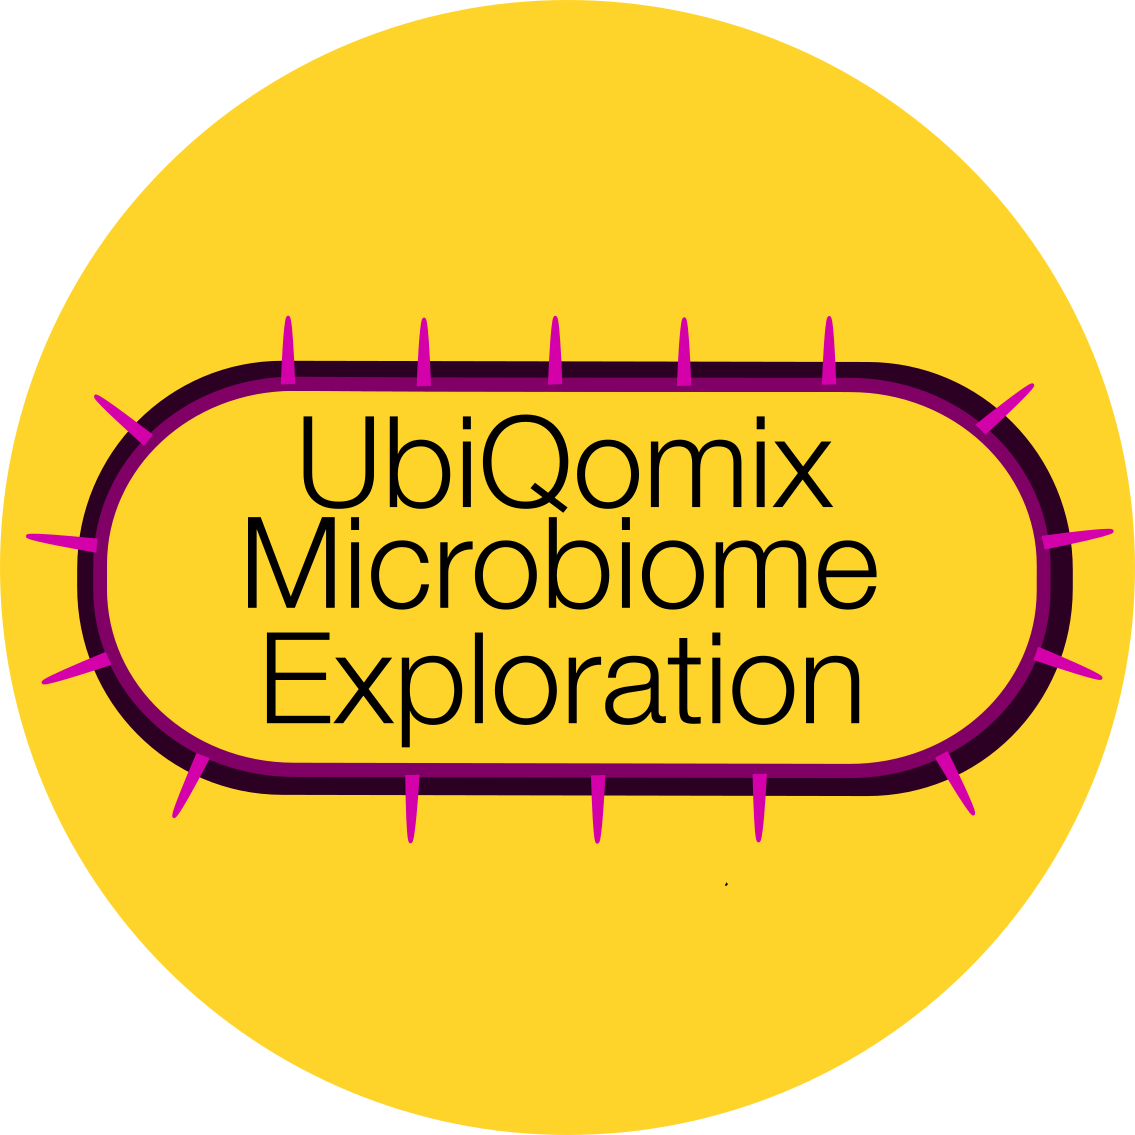 UbiQomix Microbiome Exploration